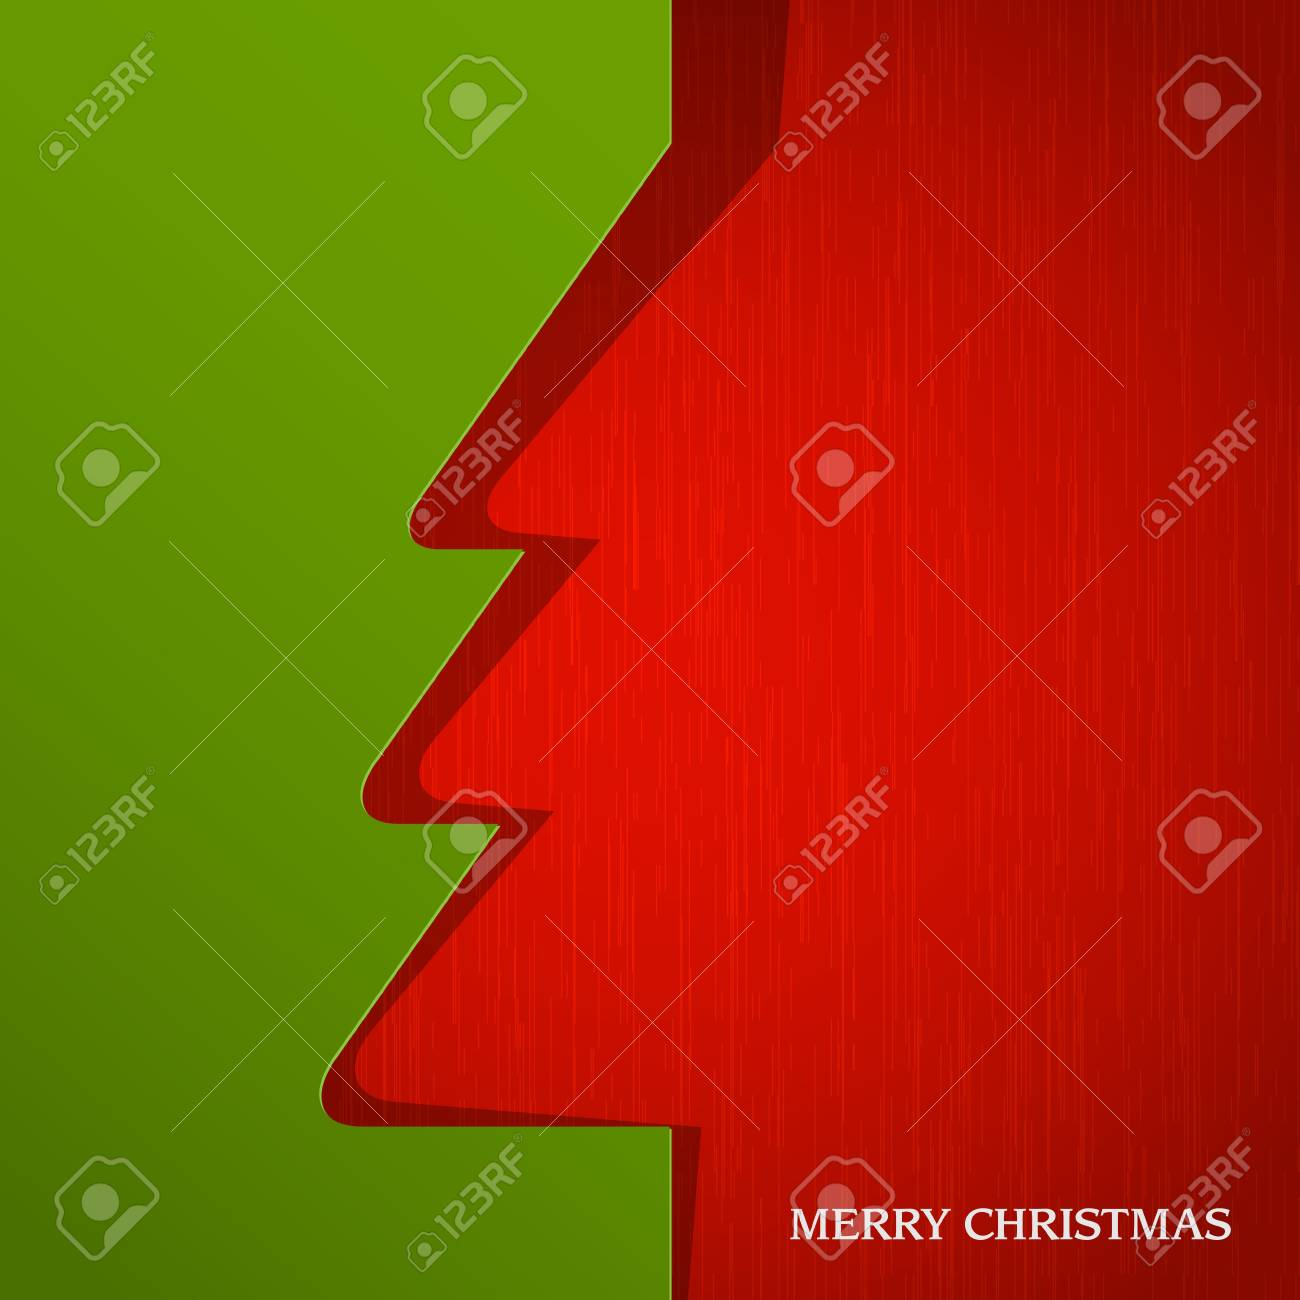 Christmas tree cut out on paper. Stock Vector - 15545256